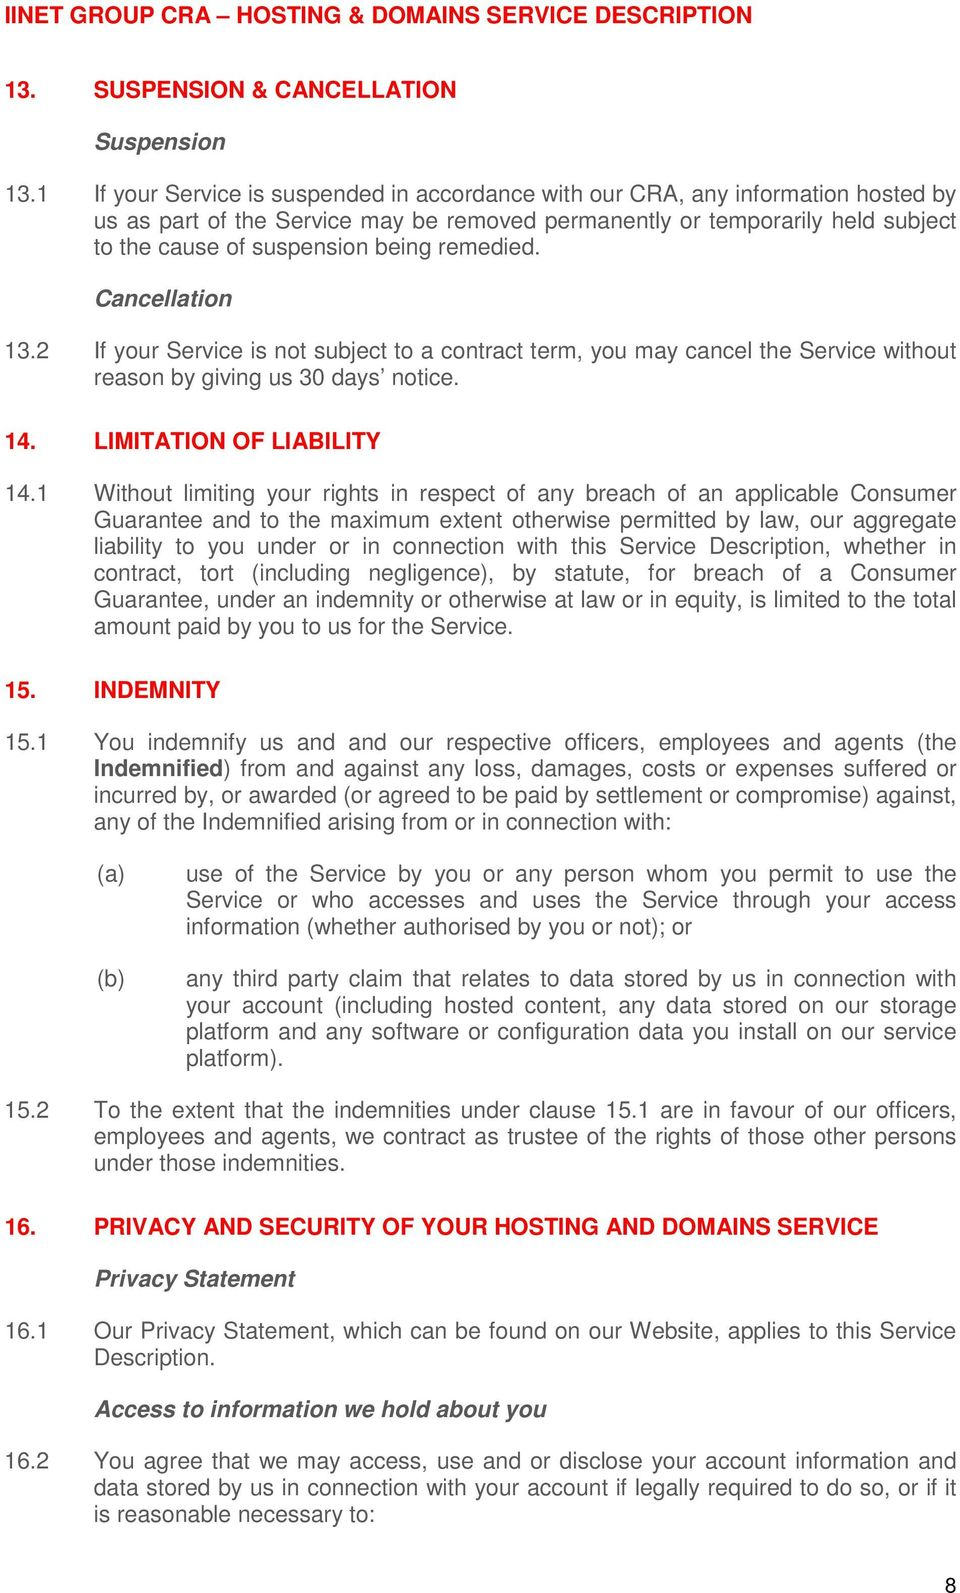 remedied. Cancellation 13.2 If your Service is not subject to a contract term, you may cancel the Service without reason by giving us 30 days notice. 14. LIMITATION OF LIABILITY 14.